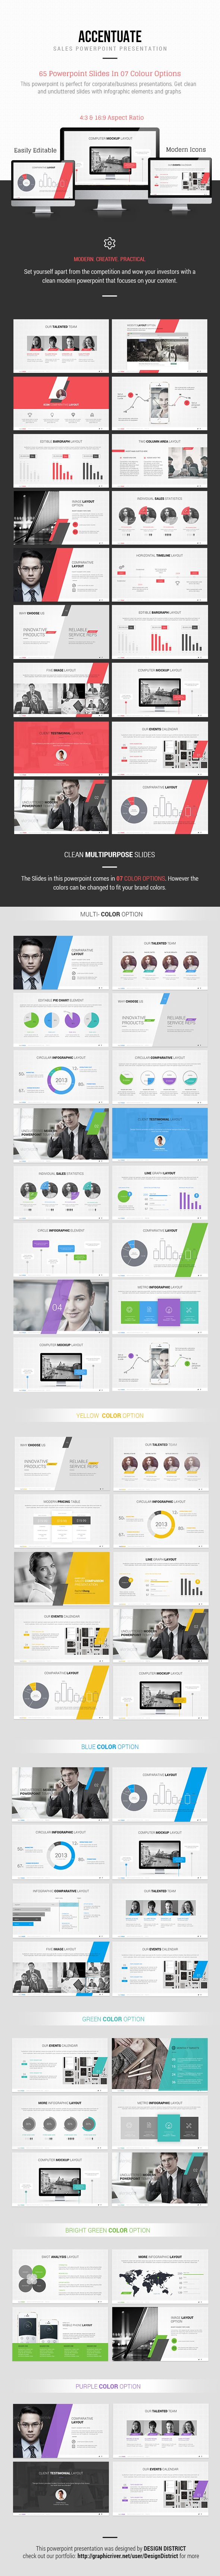 Accentuate Modern Powerpoint on Behance